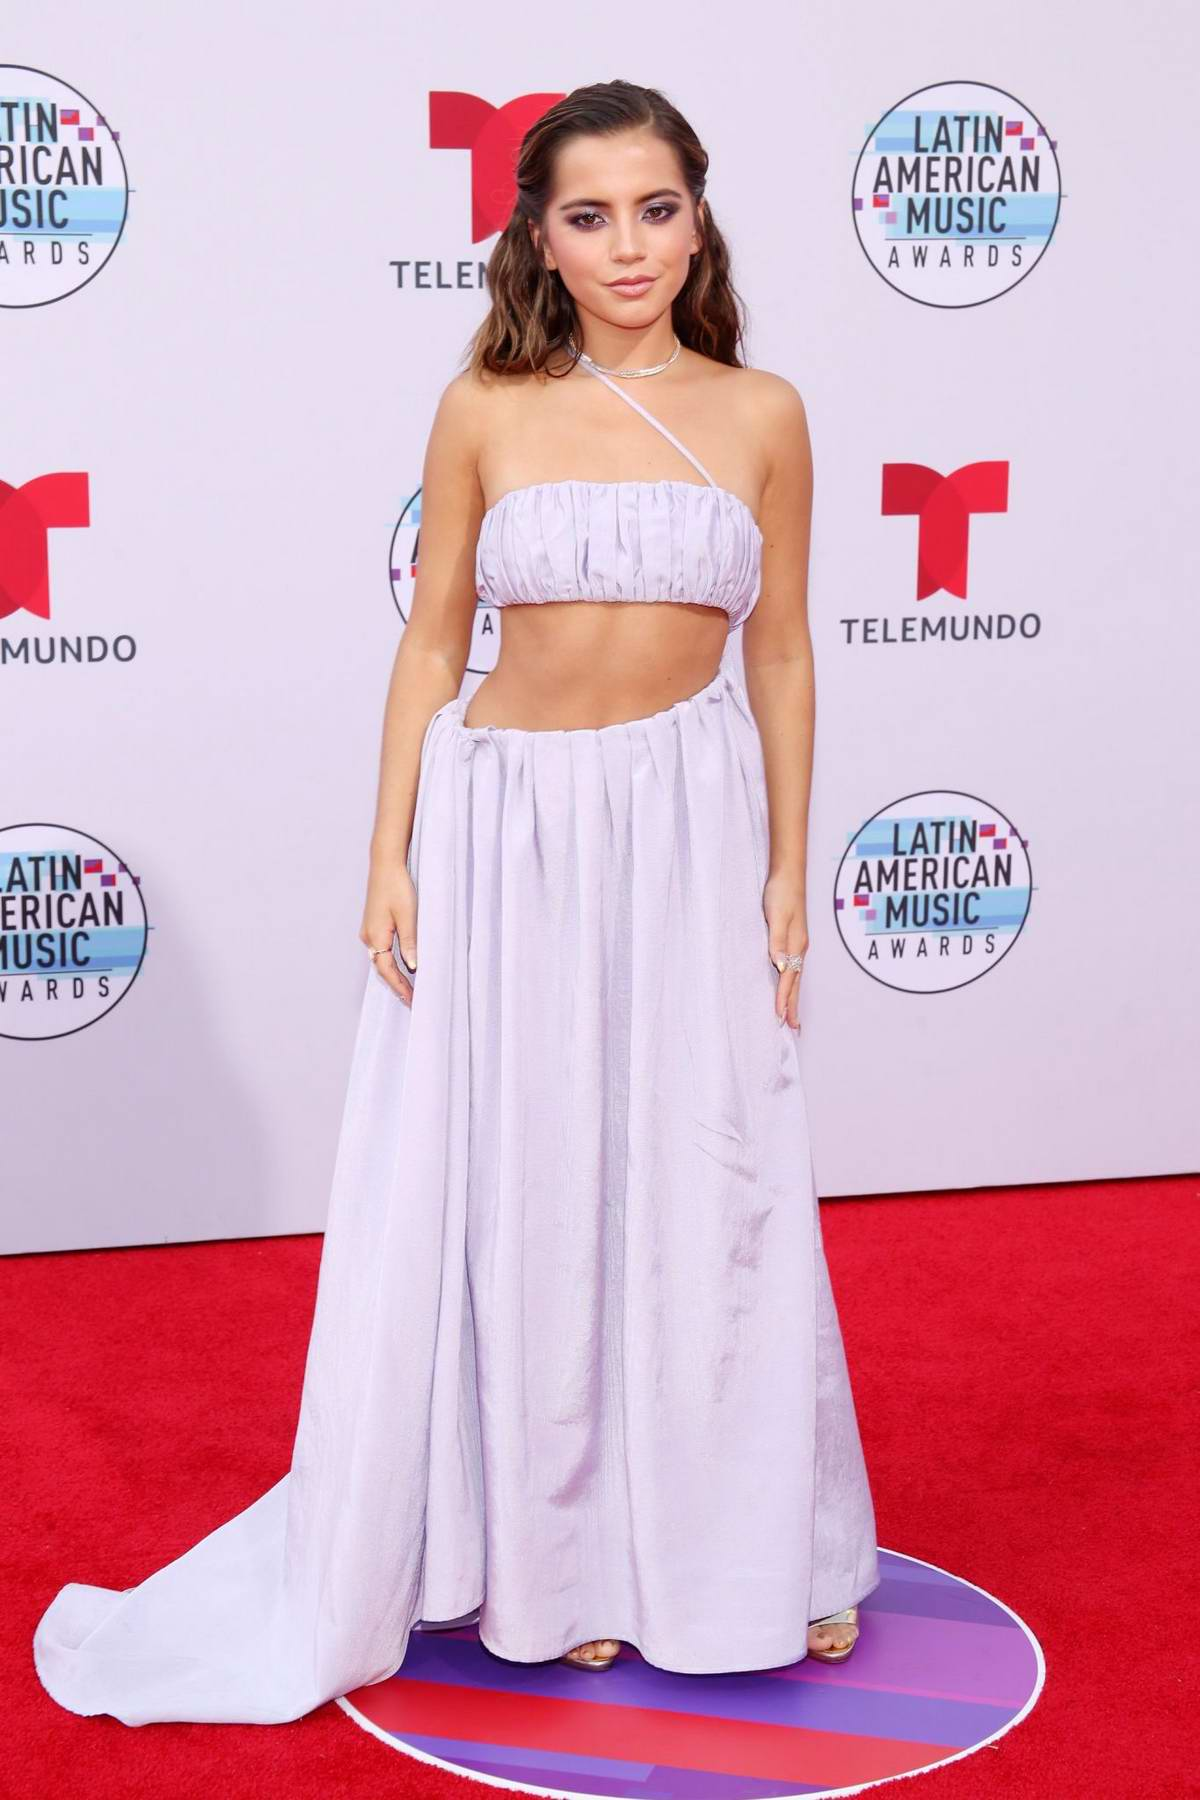 Isabela Moner attends the Latin American Music Awards 2019 at Dolby Theatre in Hollywood, California